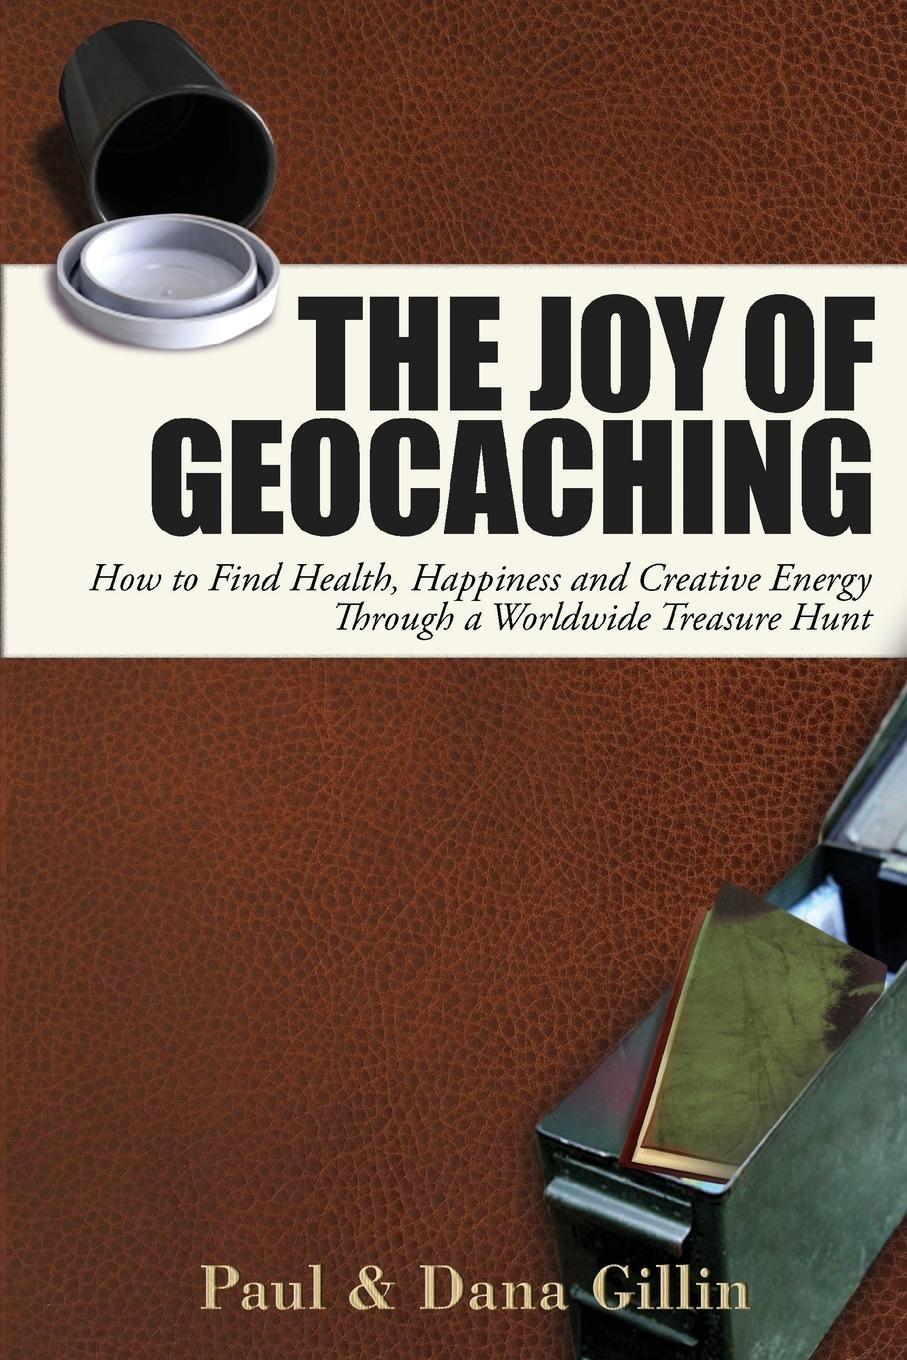 Download The Joy of Geocaching: How to Find Health, Happiness and Creative Energy Through a Worldwide Treasure Hunt PDF